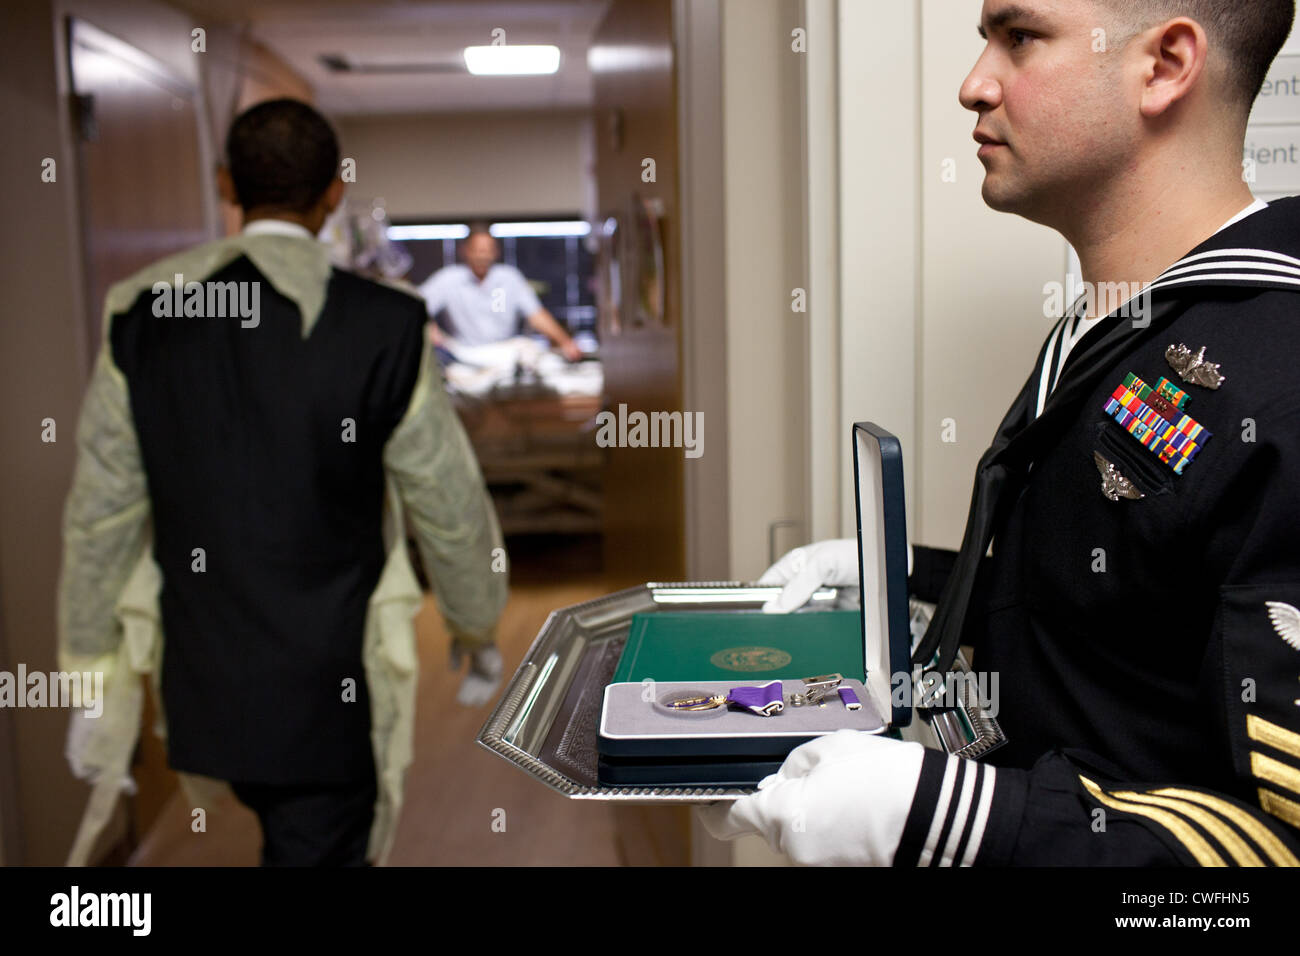 President Barack Obama visits a wounded warrior for a Purple Heart presentation at Walter Reed National Military - Stock Image